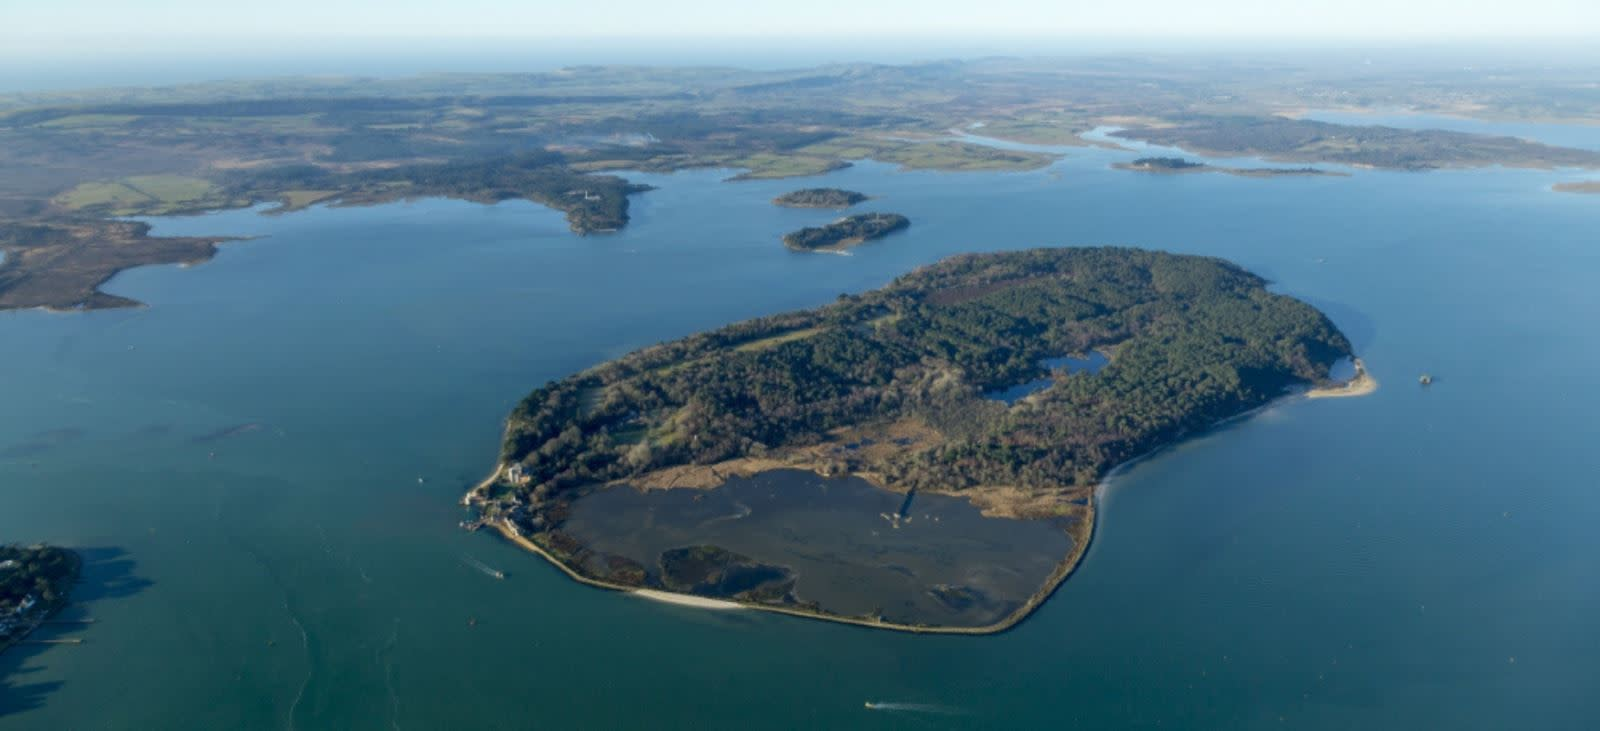 Brownsea Island, Dorset from the air - photo credit to National Trust Images and John Miller